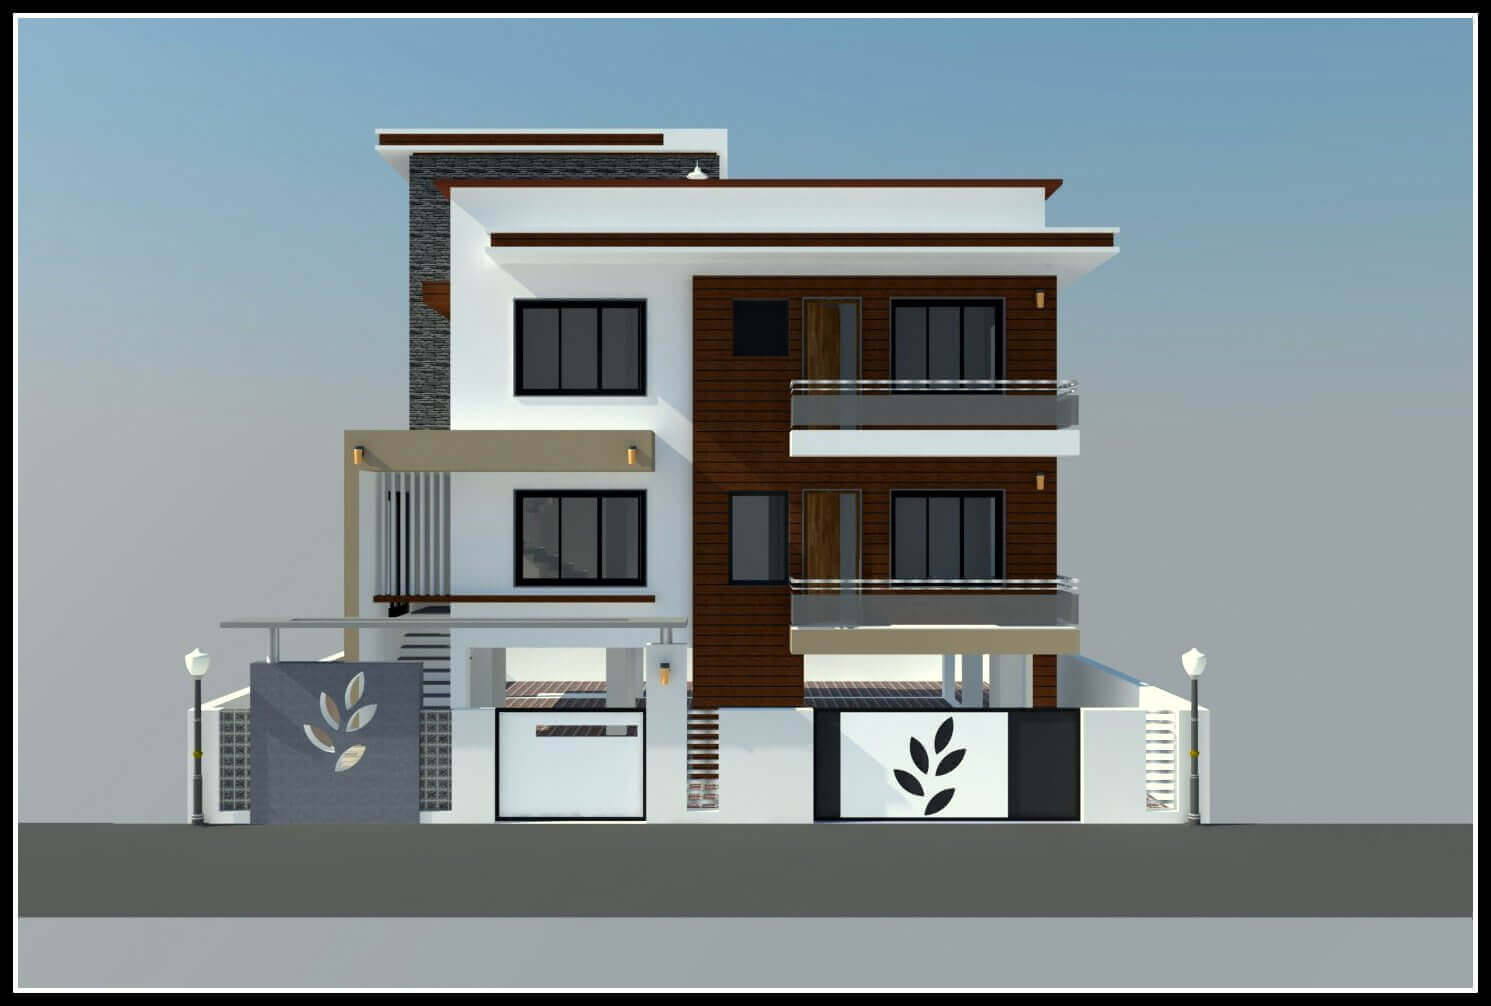 House Architectural layout